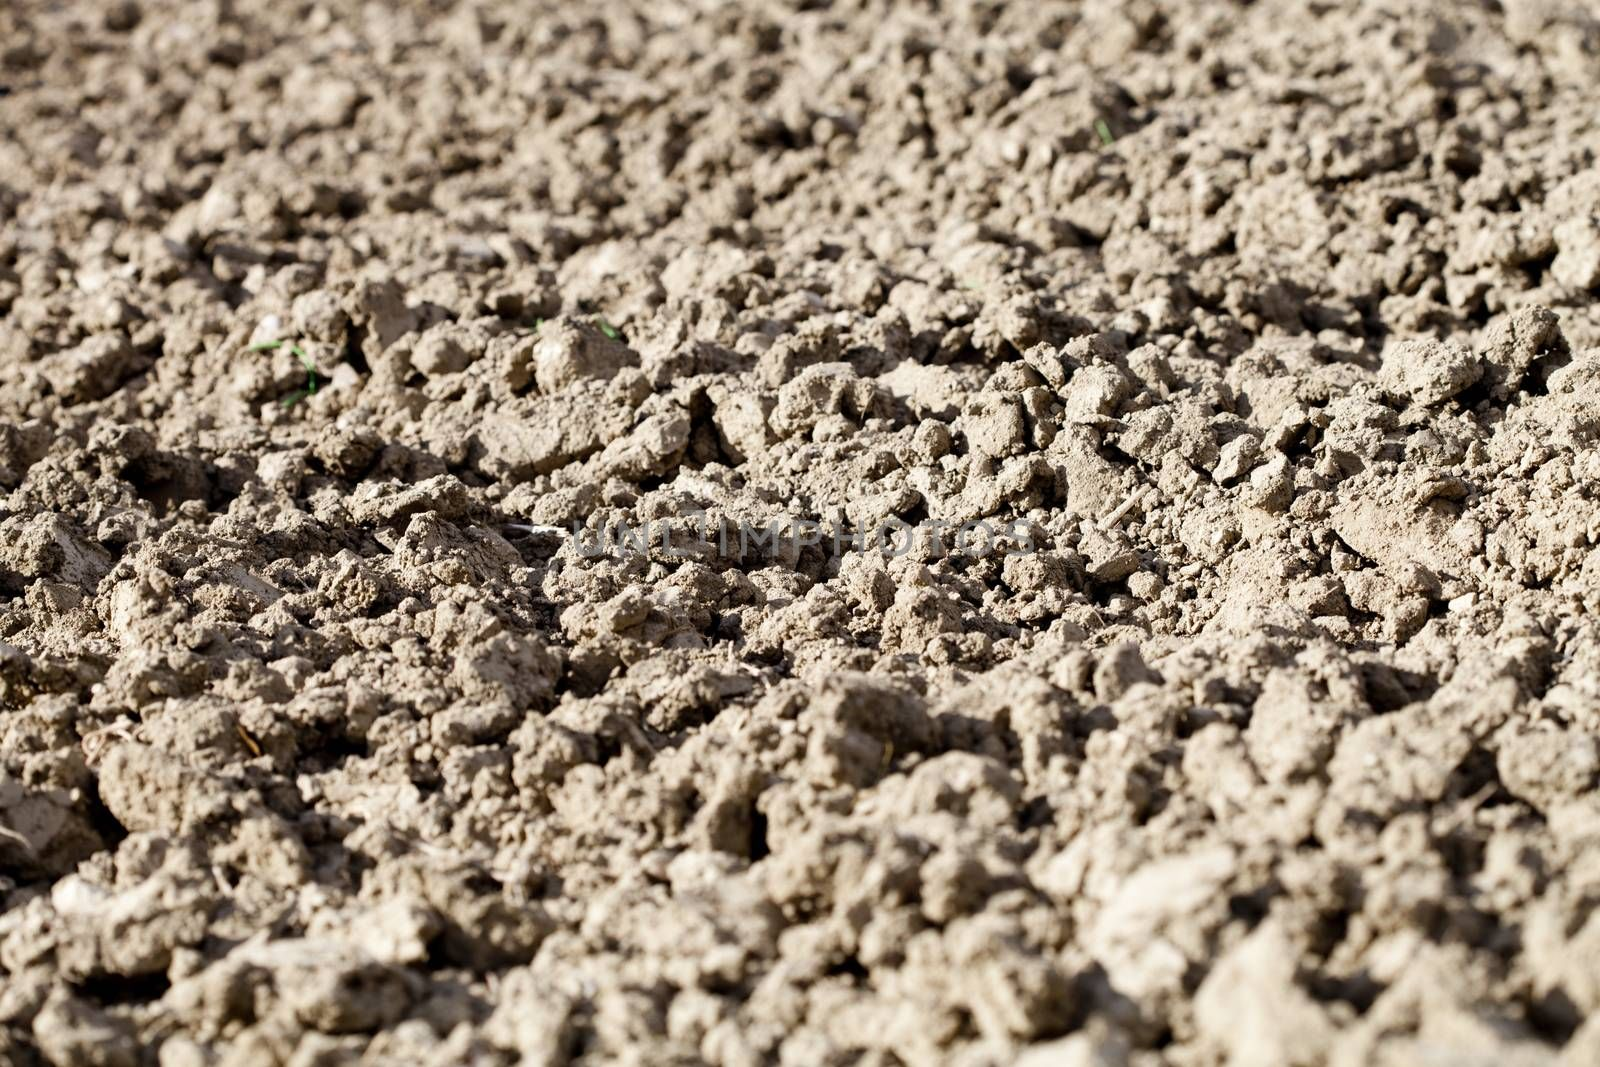 Soil texture background ready for cultivation.